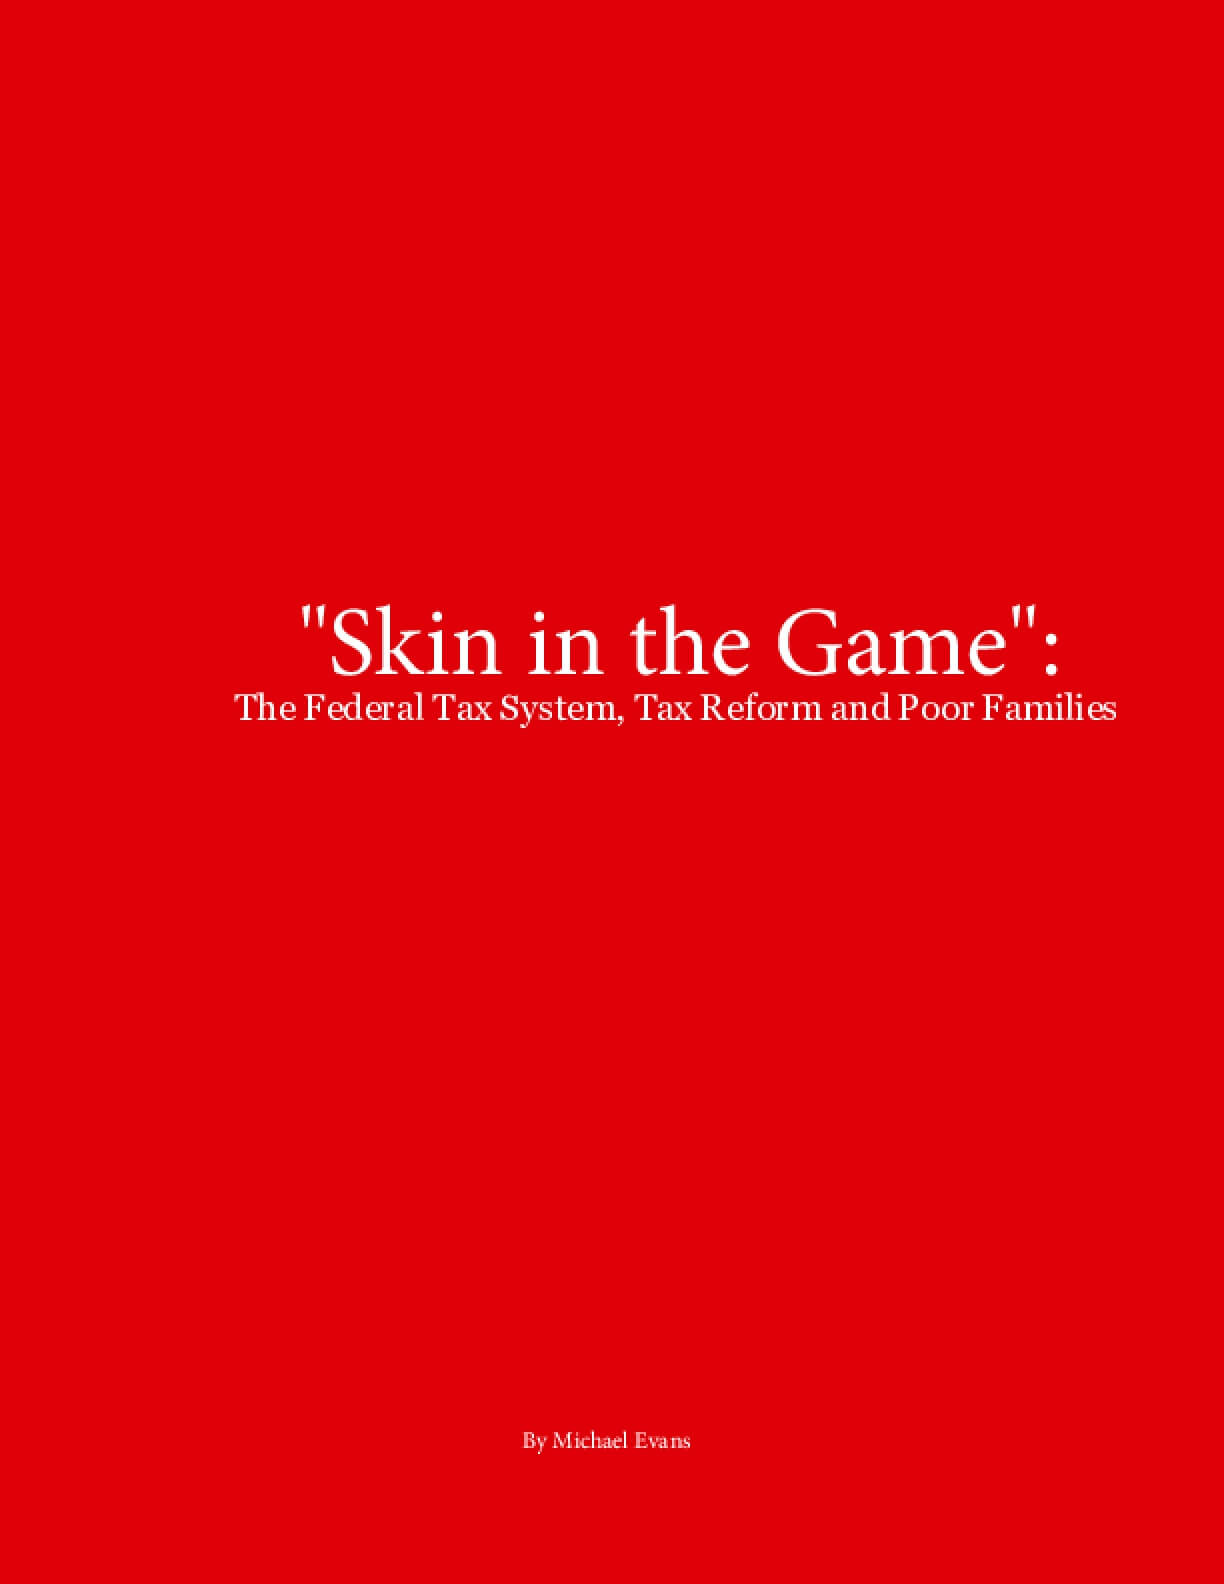 Skin in the Game: The Federal Tax System, Tax Reform and Poor Families